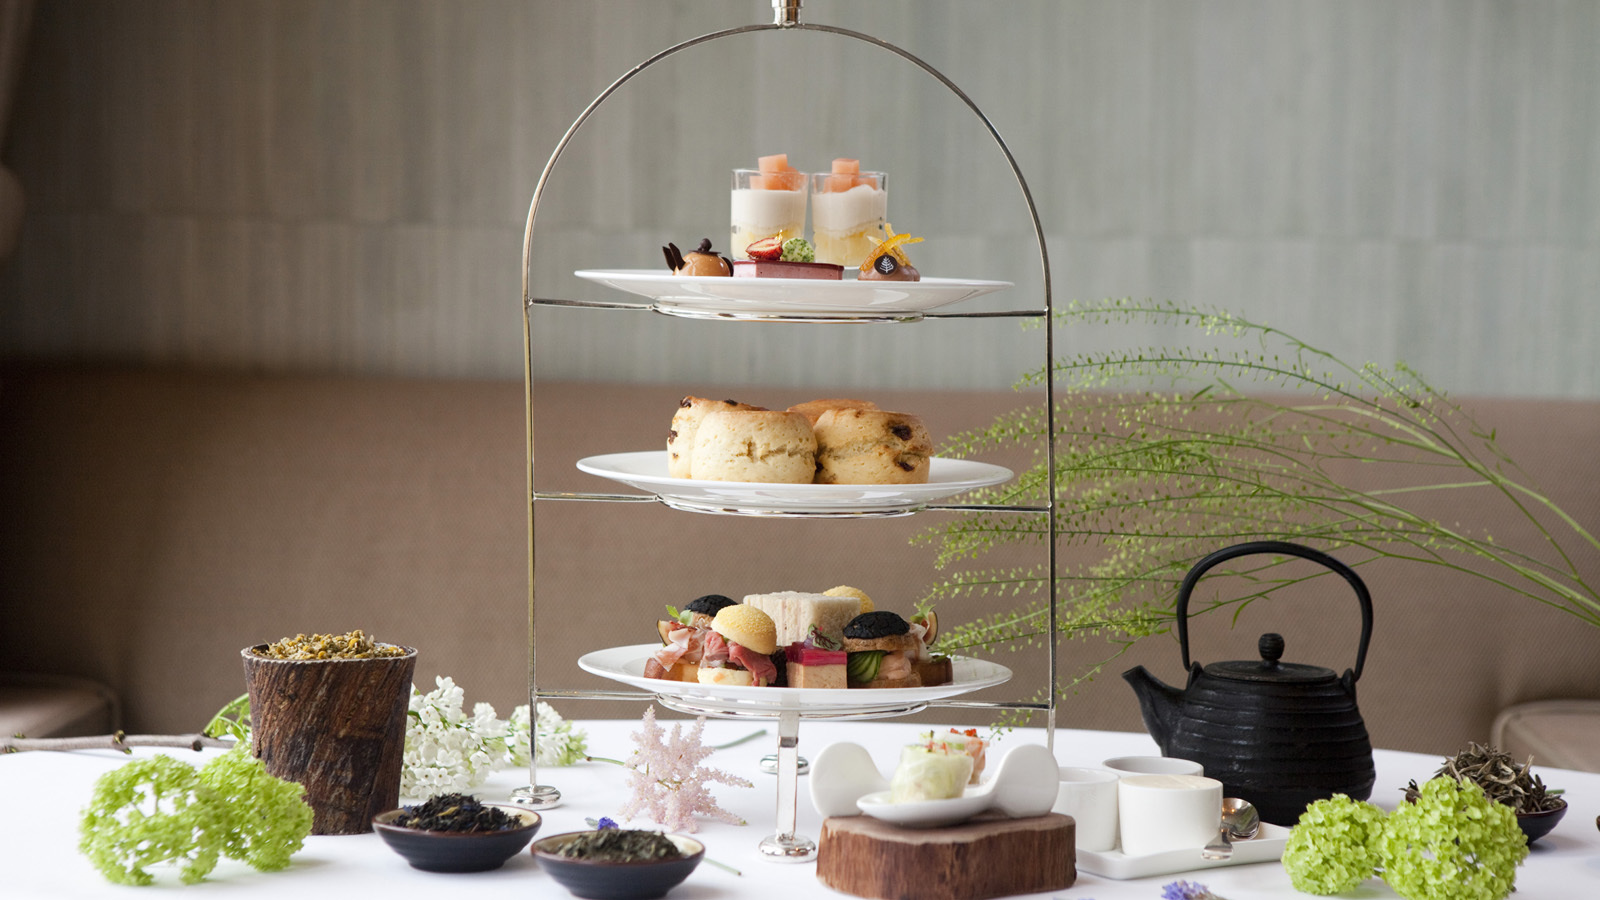 The best afternoon tea menus to try this summer